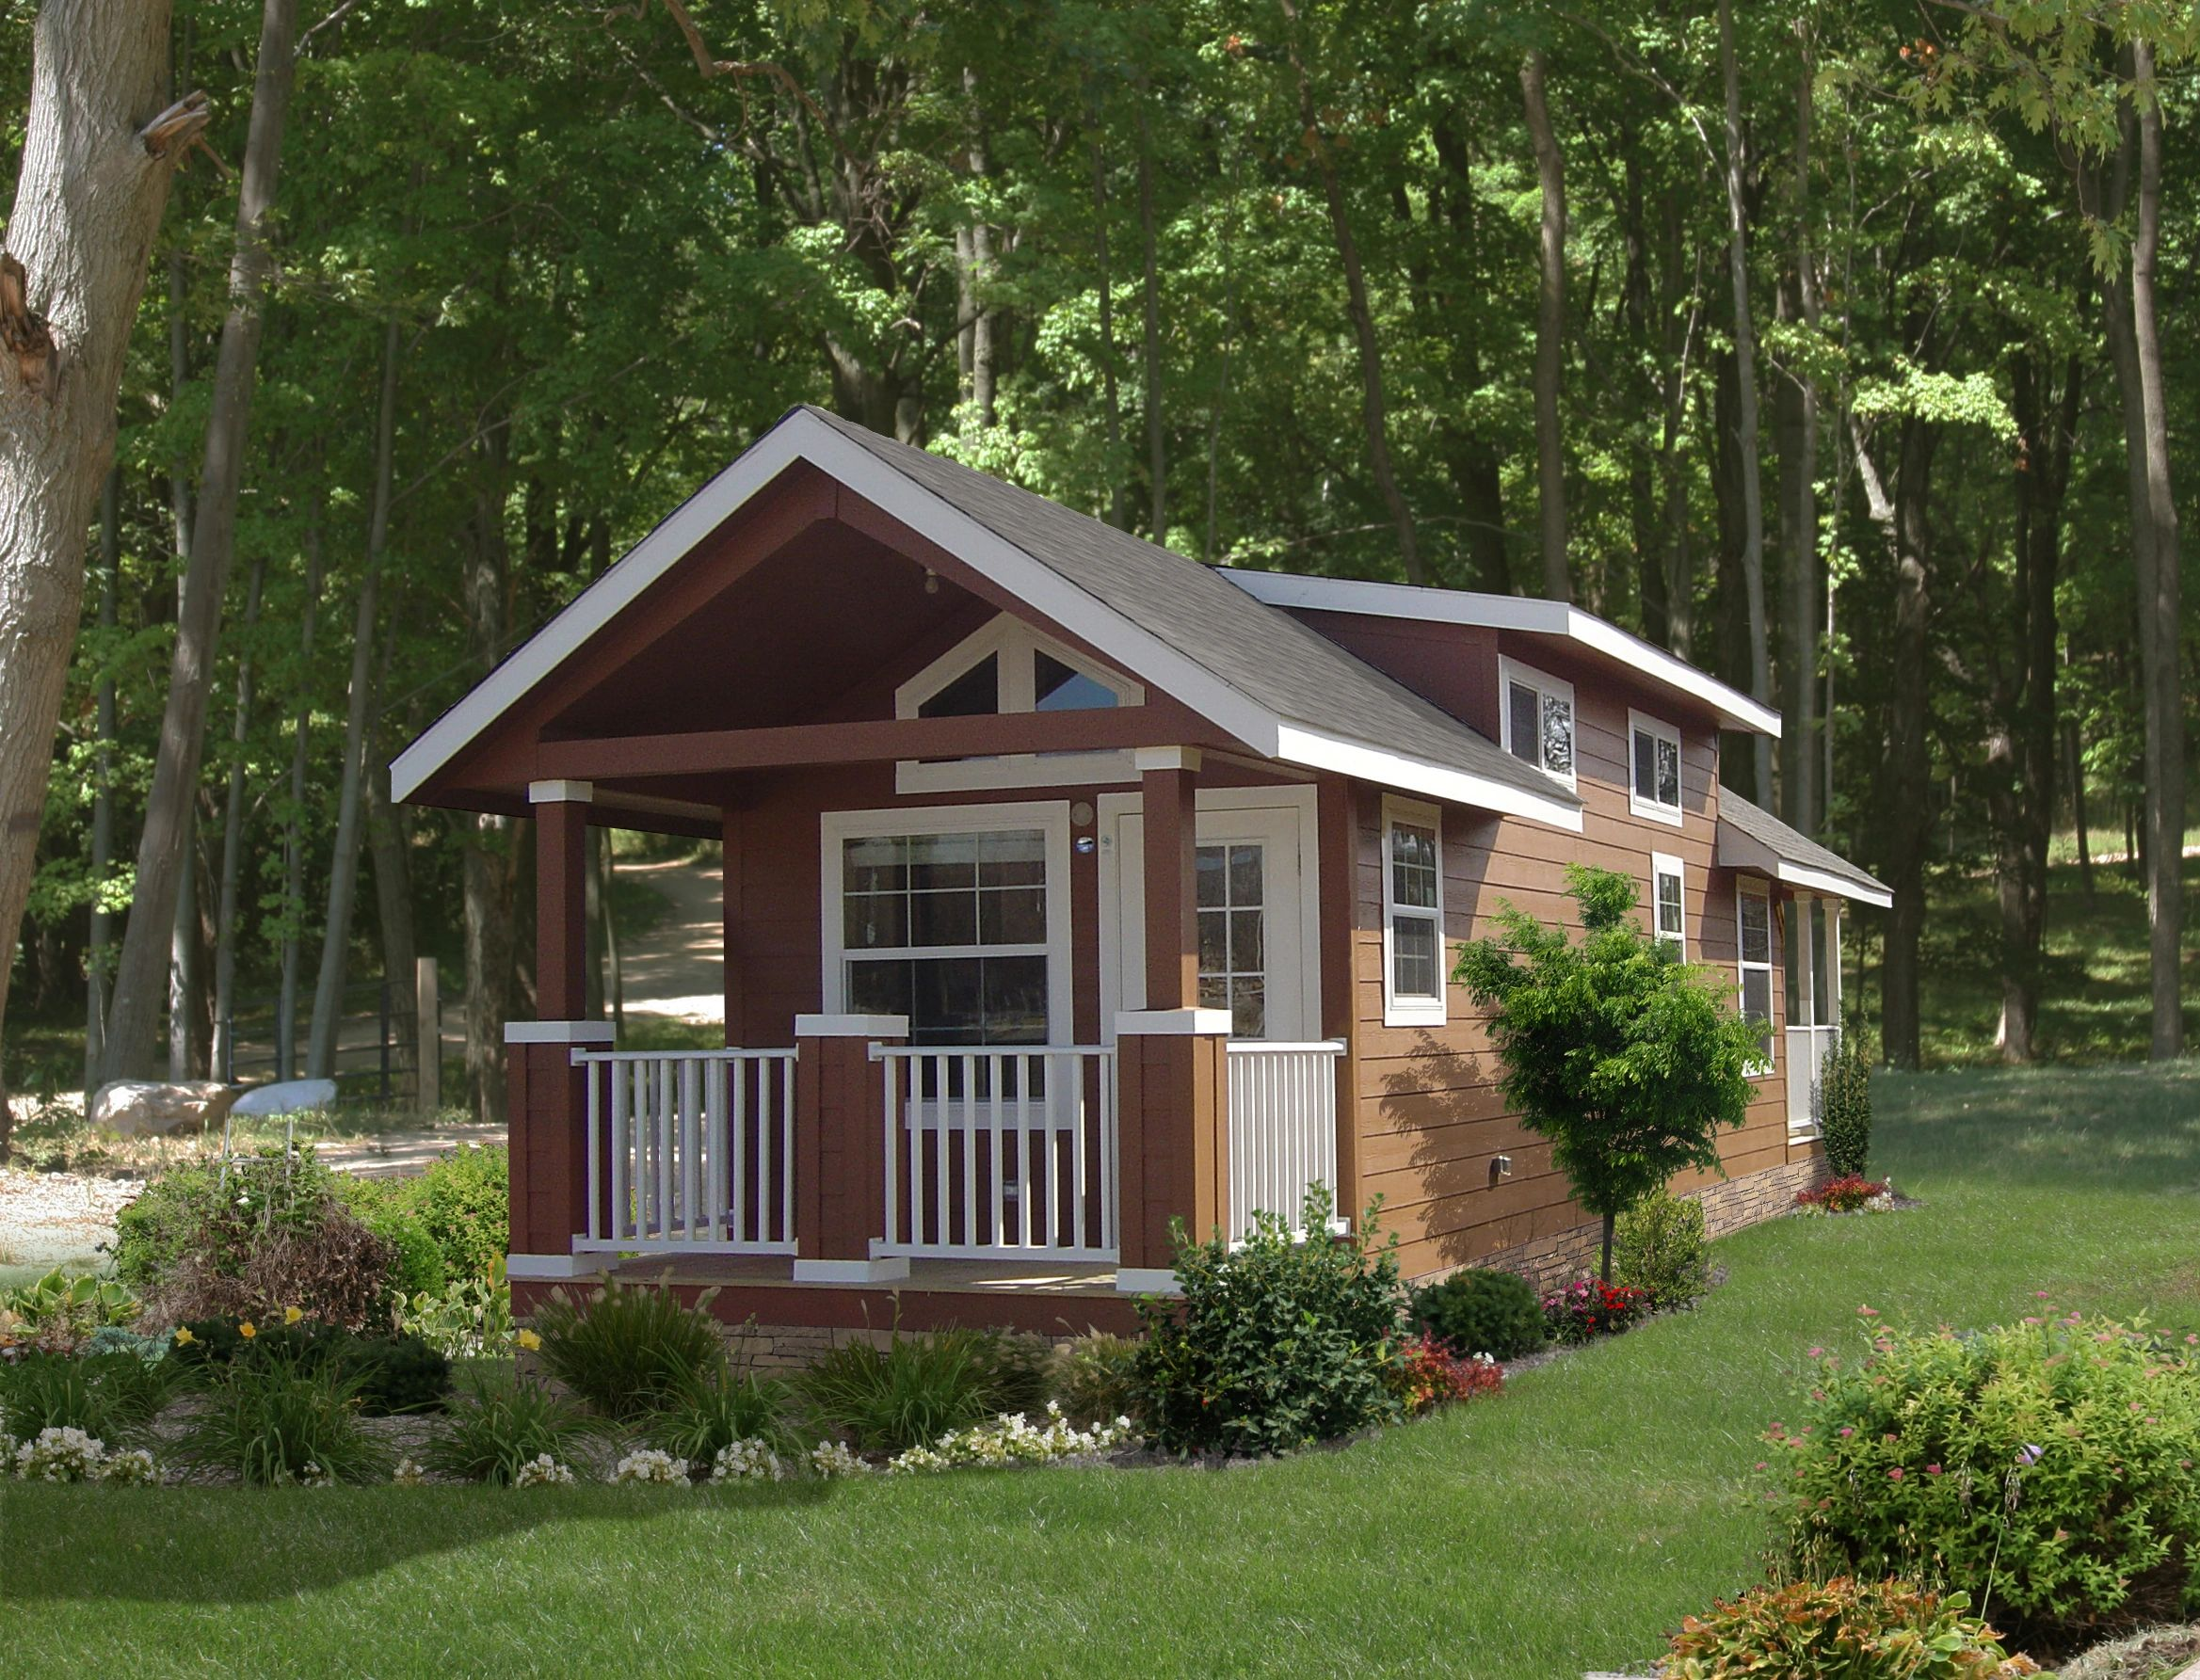 Modular Homes For Sale In Brookings Oregon